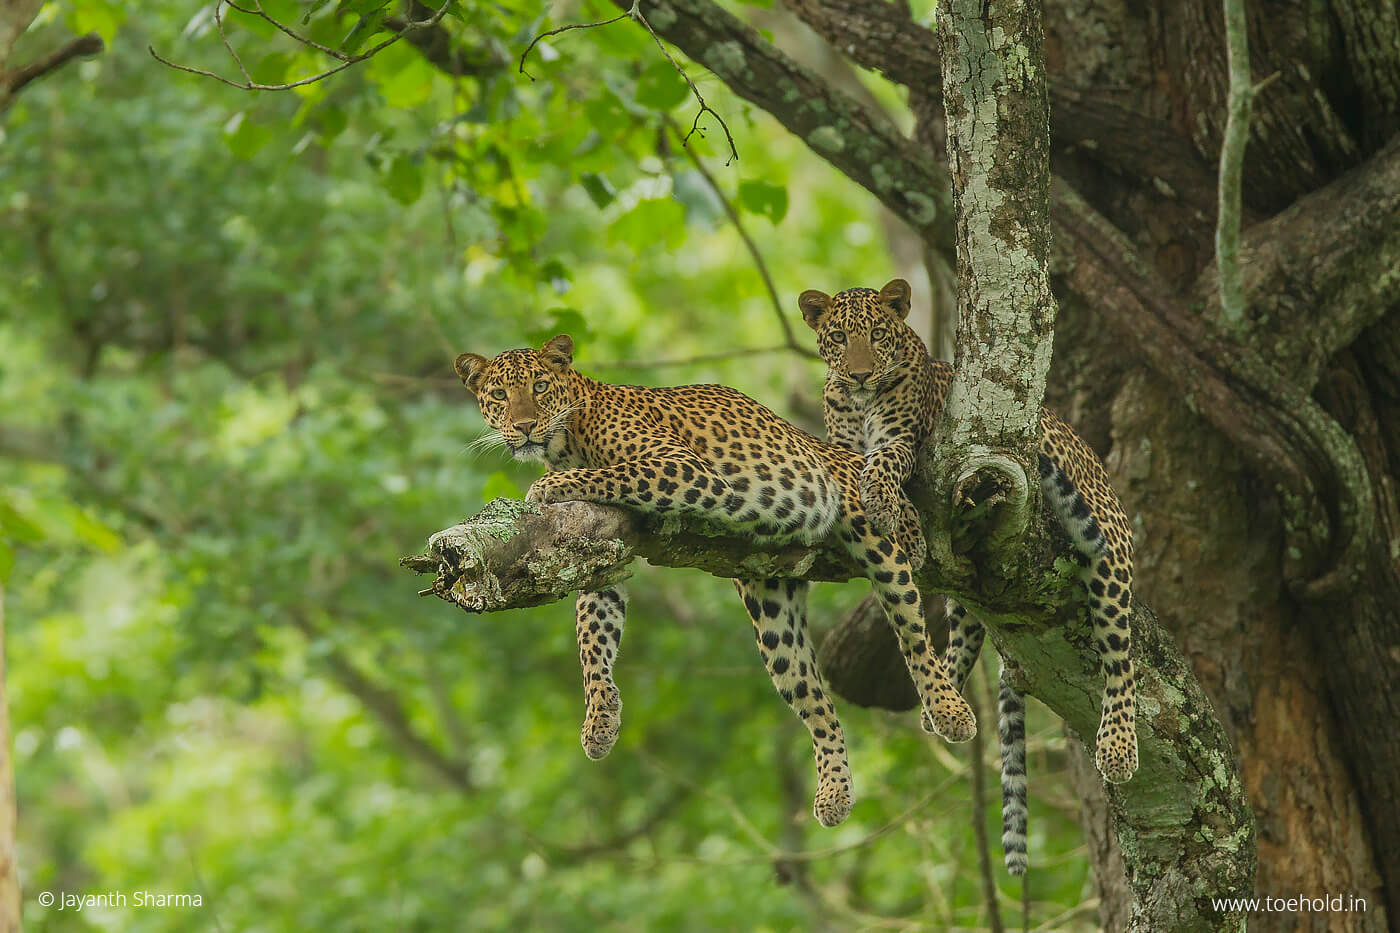 Leopard and cub kabini 2021